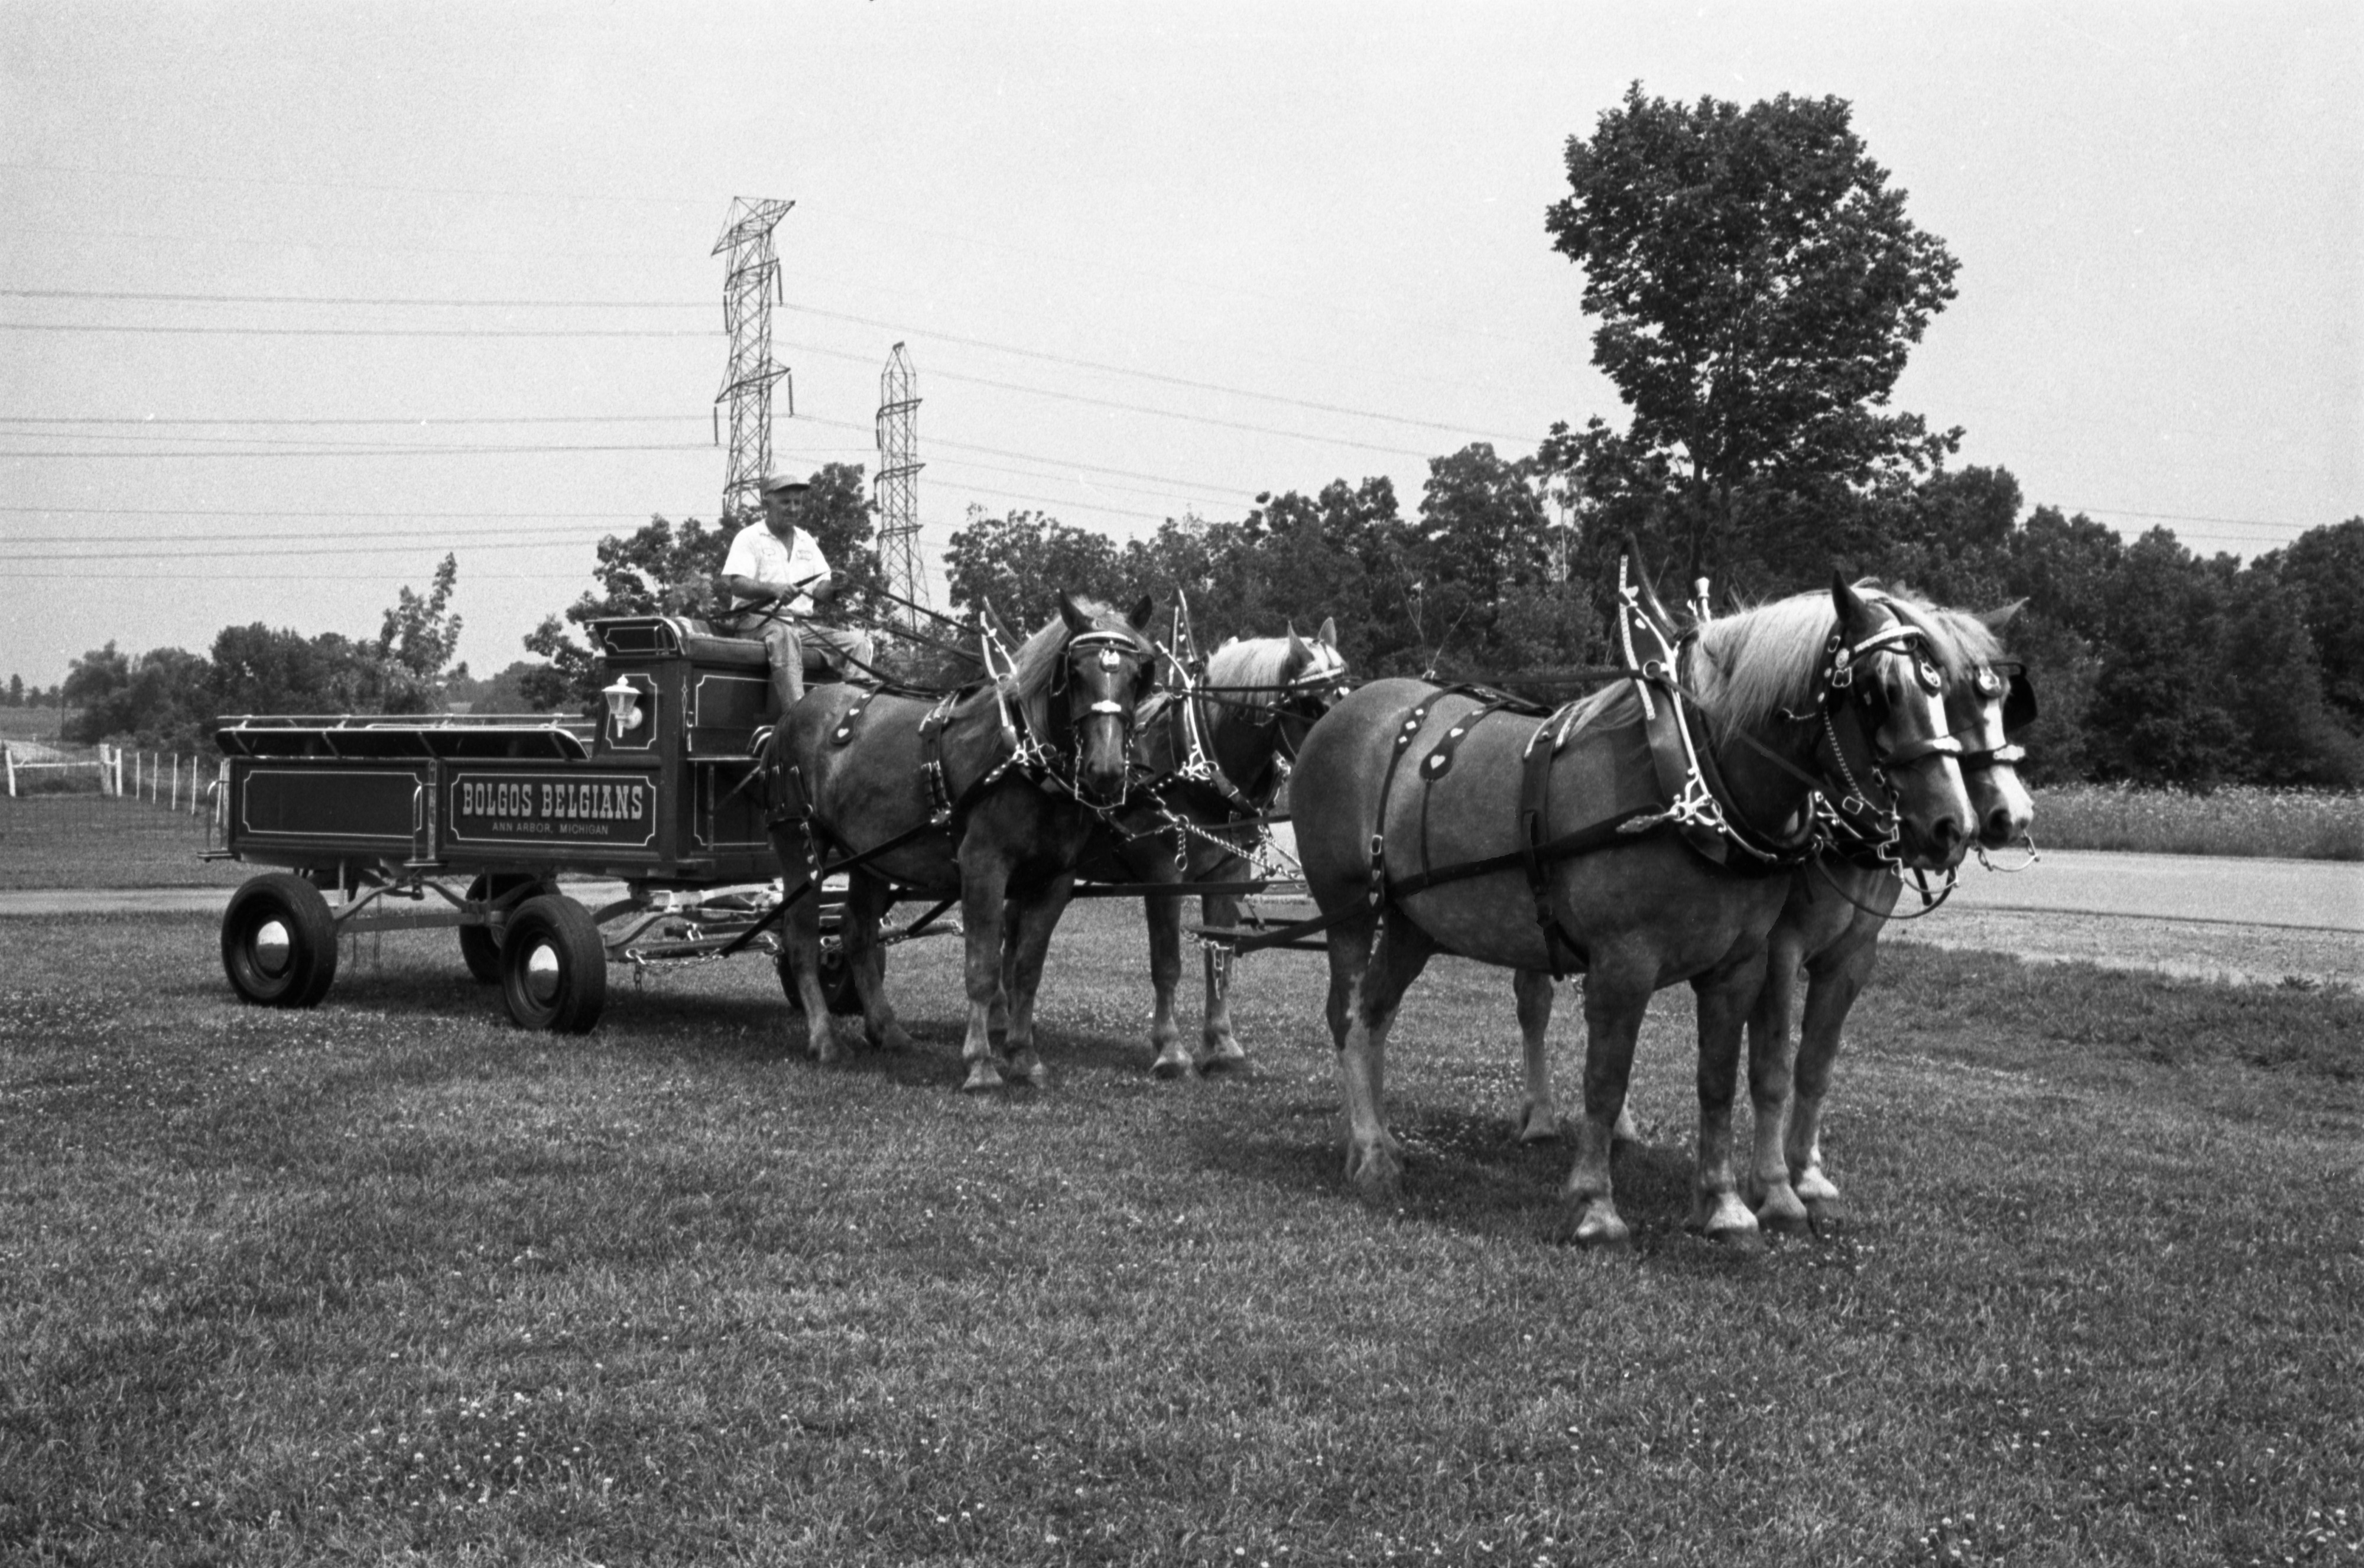 Zina Bolgos With His Belgian Draft Horses, July 29, 1973 image